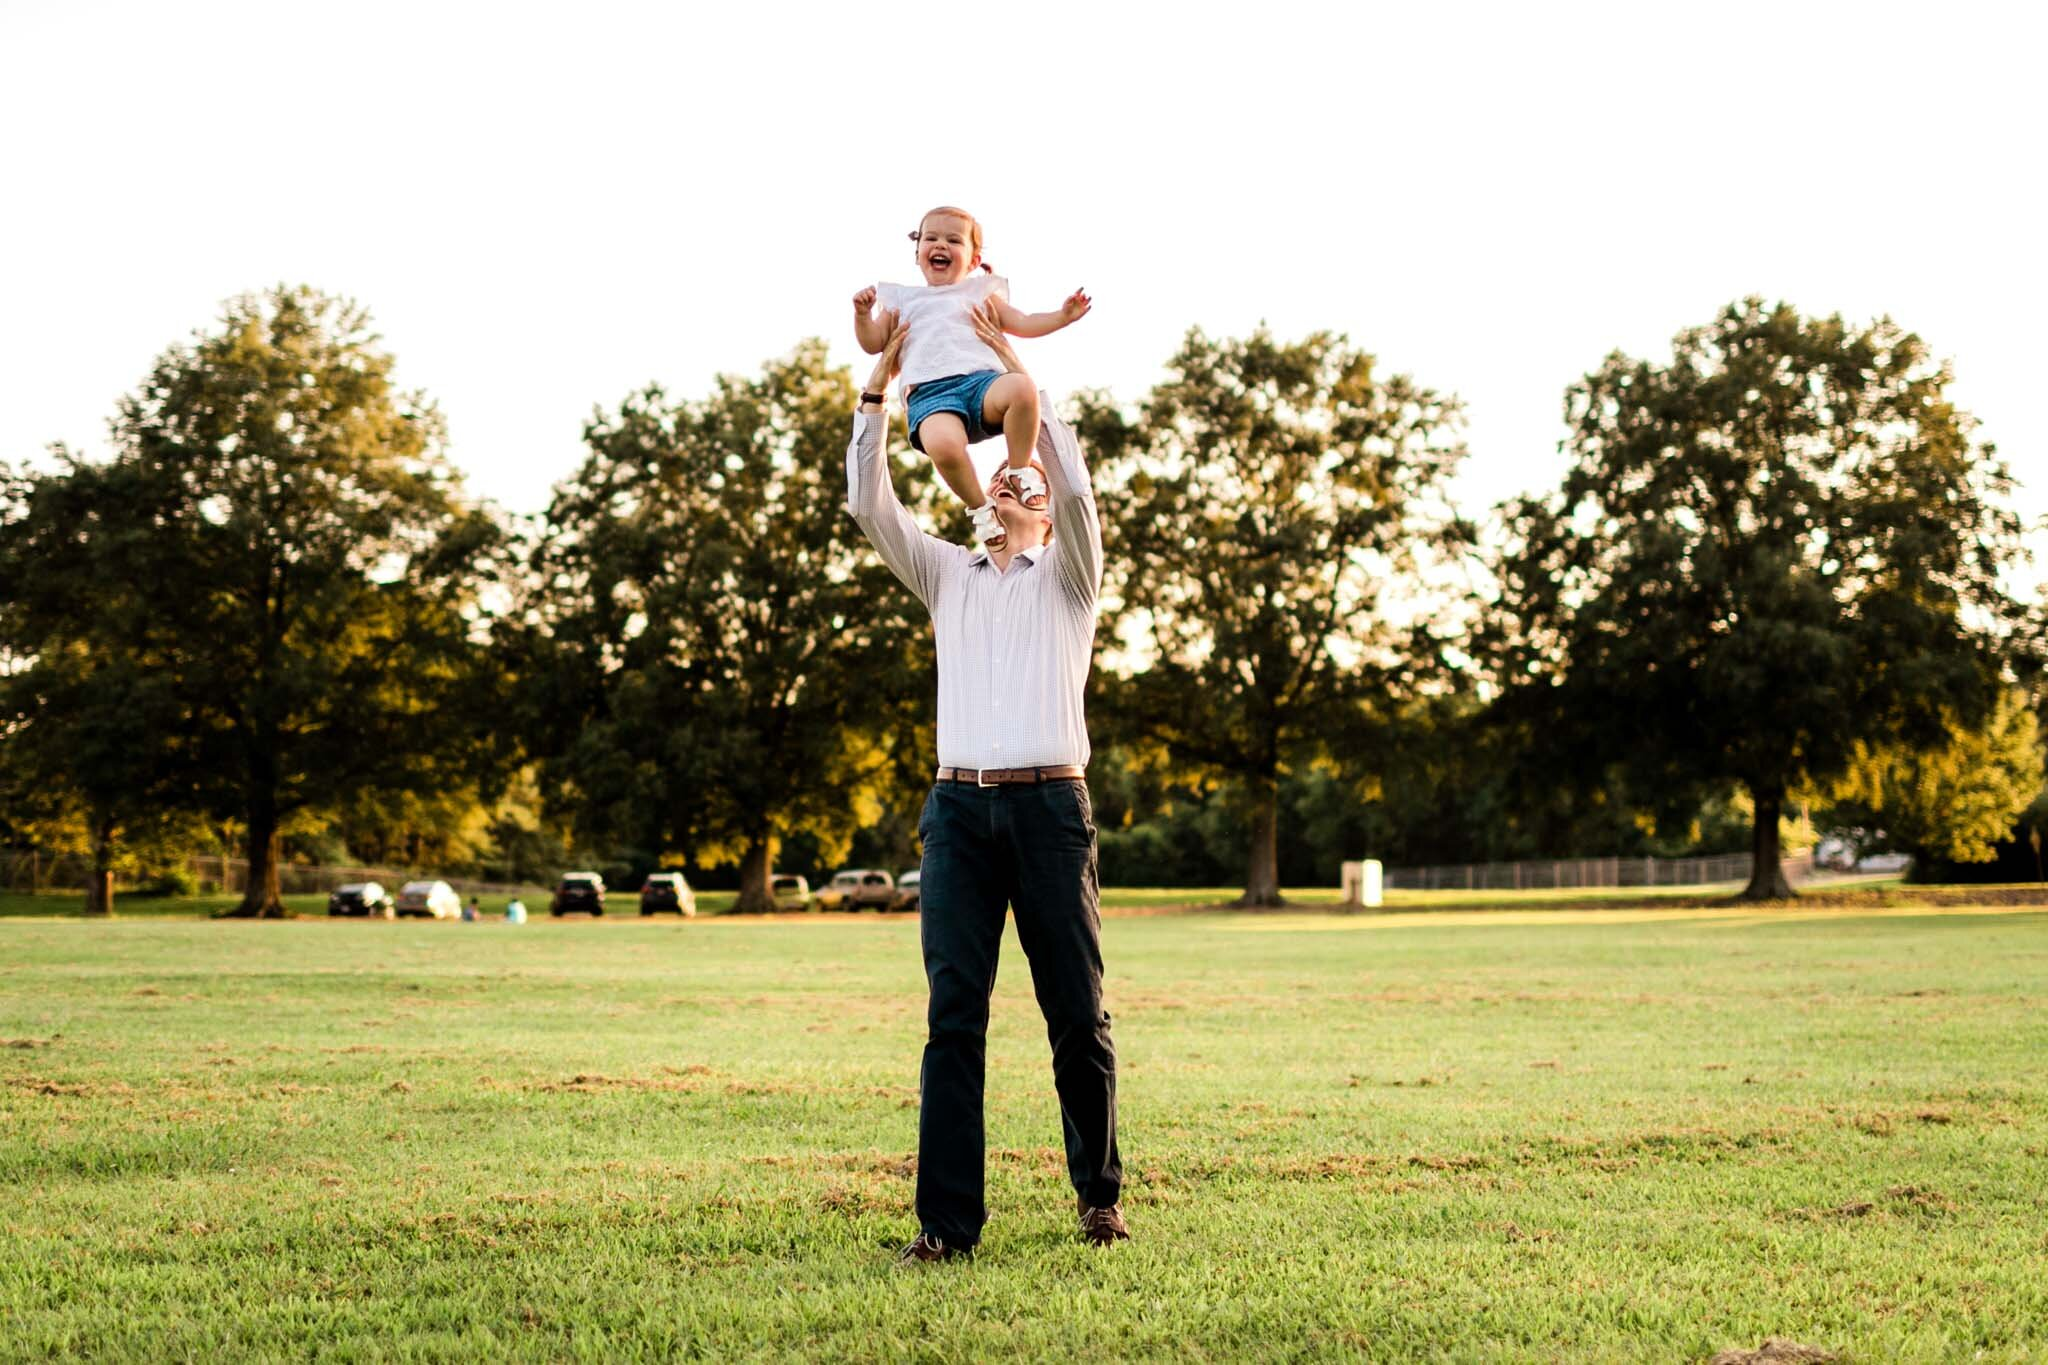 Raleigh Family Photographer at Dix Park | By G. Lin Photography | Dad tossing daughter in air at open field